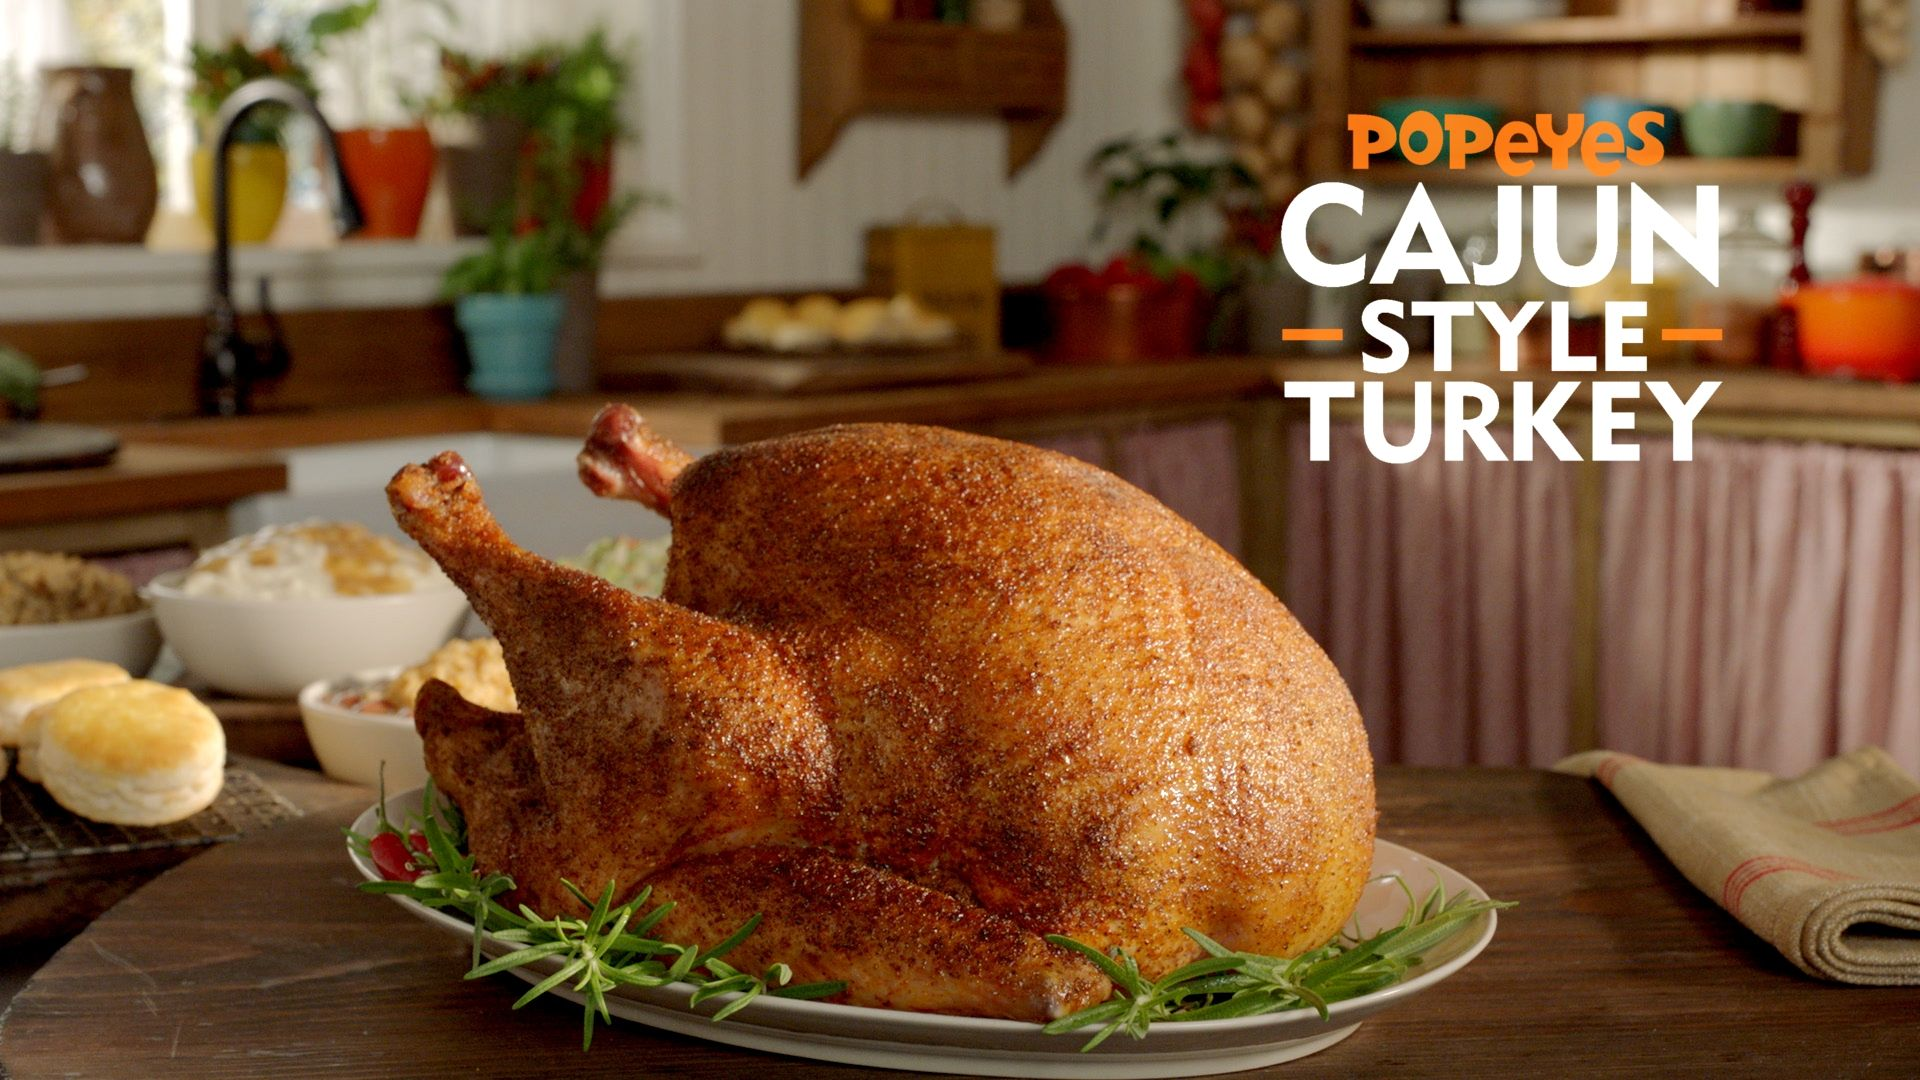 You Can Pick Up Cajun-Style Turkey From Popeyes On Thanksgiving So Your Holiday Is About To Get Stupid Easy